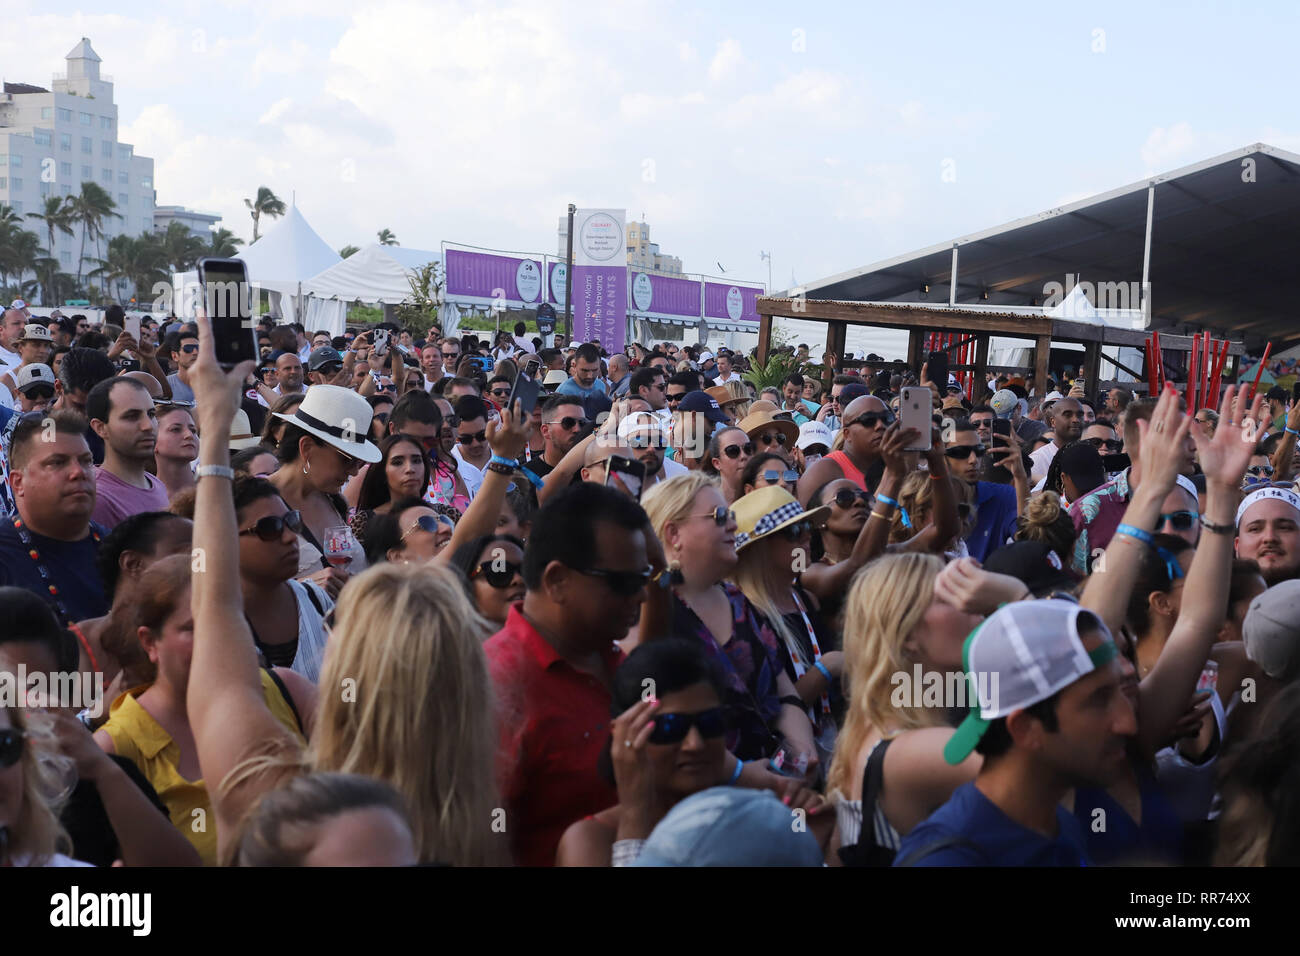 MIAMI BEACH, FL - FEBRUARY 24: Atmosphere on South Beach on February 24, 2019 in Miami Beach, Florida. People: Atmosphere Credit: Storms Media Group/Alamy Live News - Stock Image